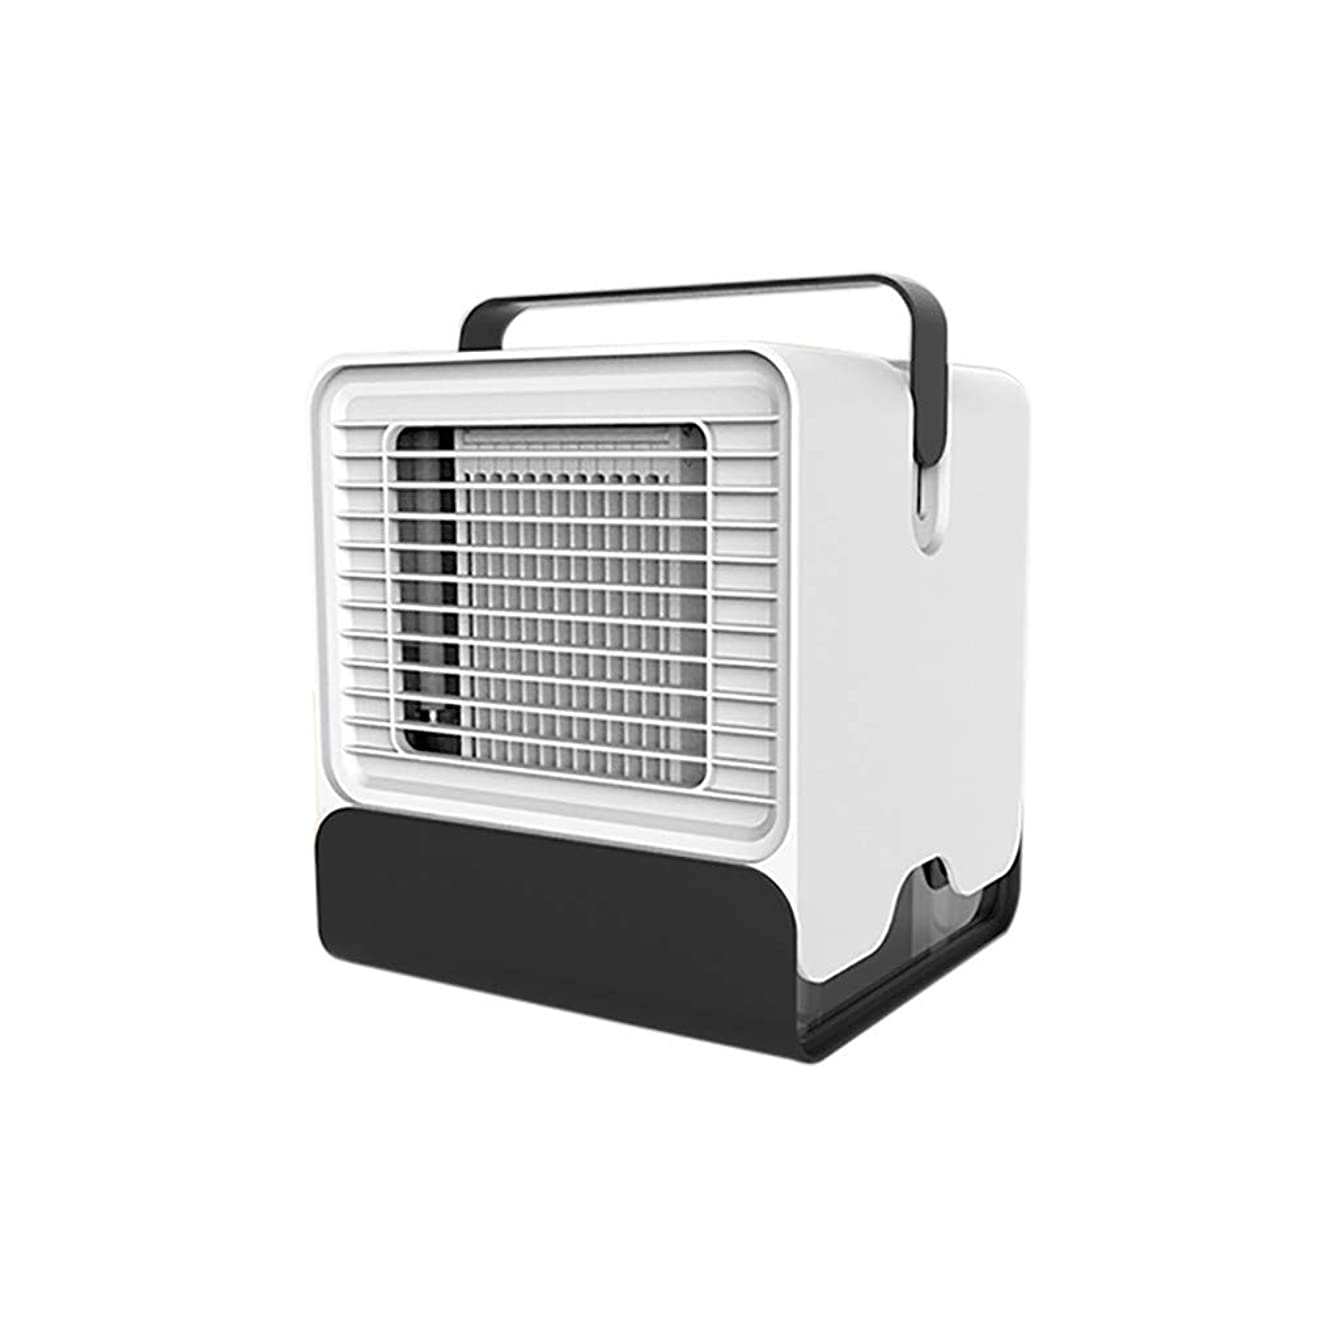 NewKelly Professional Portable Mini Air Conditioner Cool Cooling Artic Cooler Fan for Bedroom Travel (White)